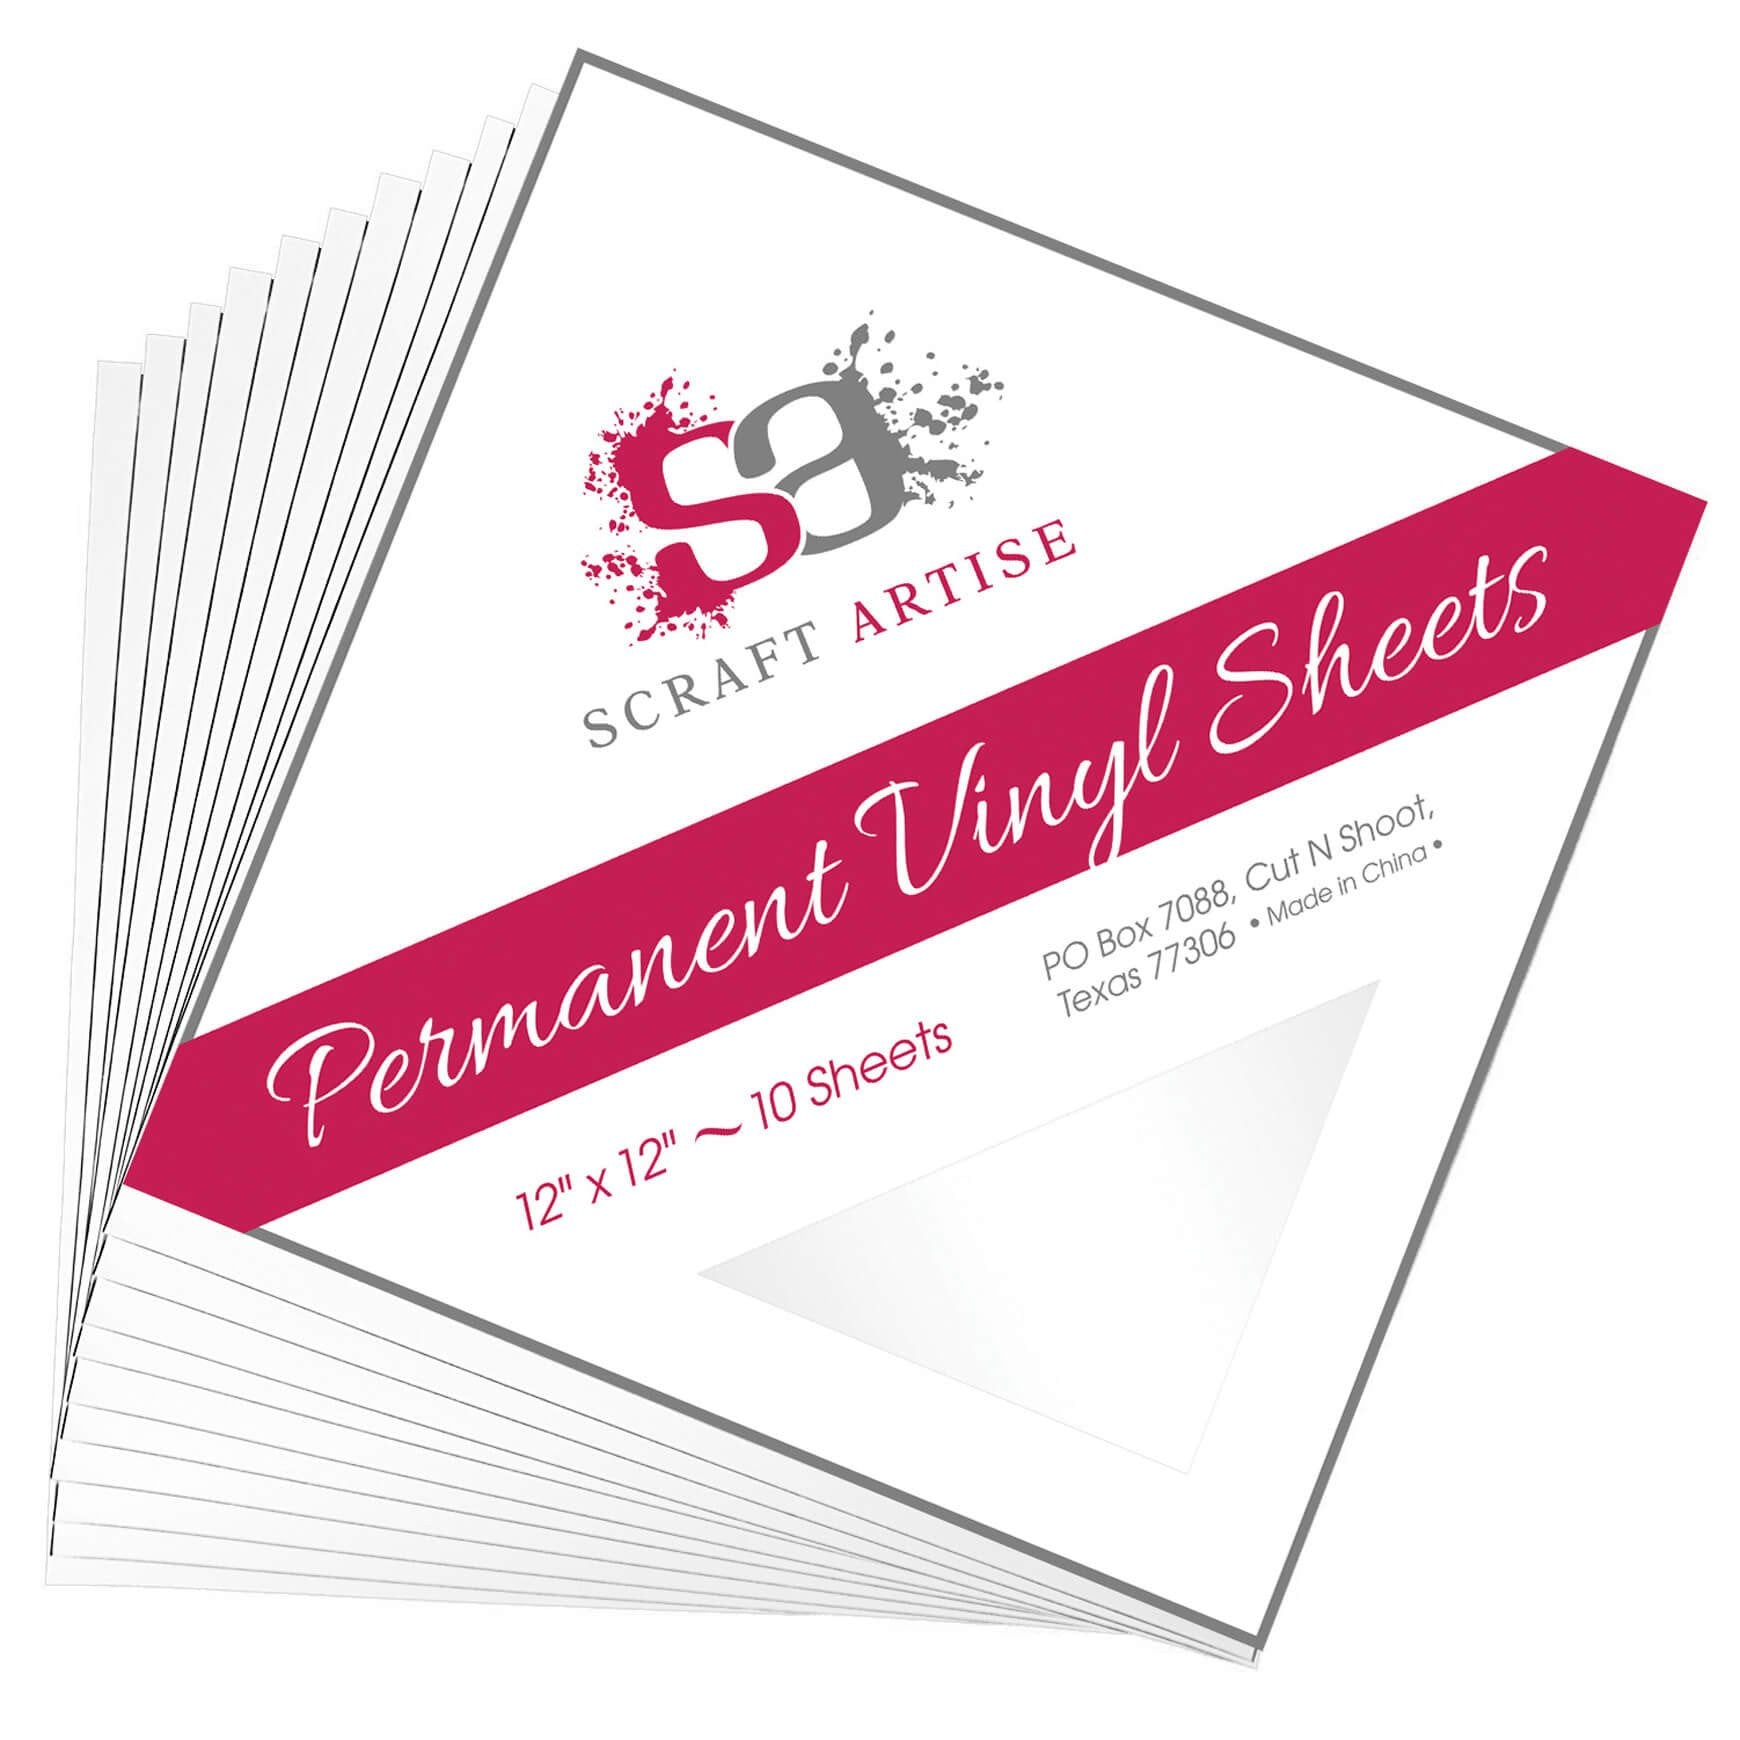 Scraft Artise White Matte Permanent Adhesive Craft Vinyl 12 x 12 Sheets - 10 Pack